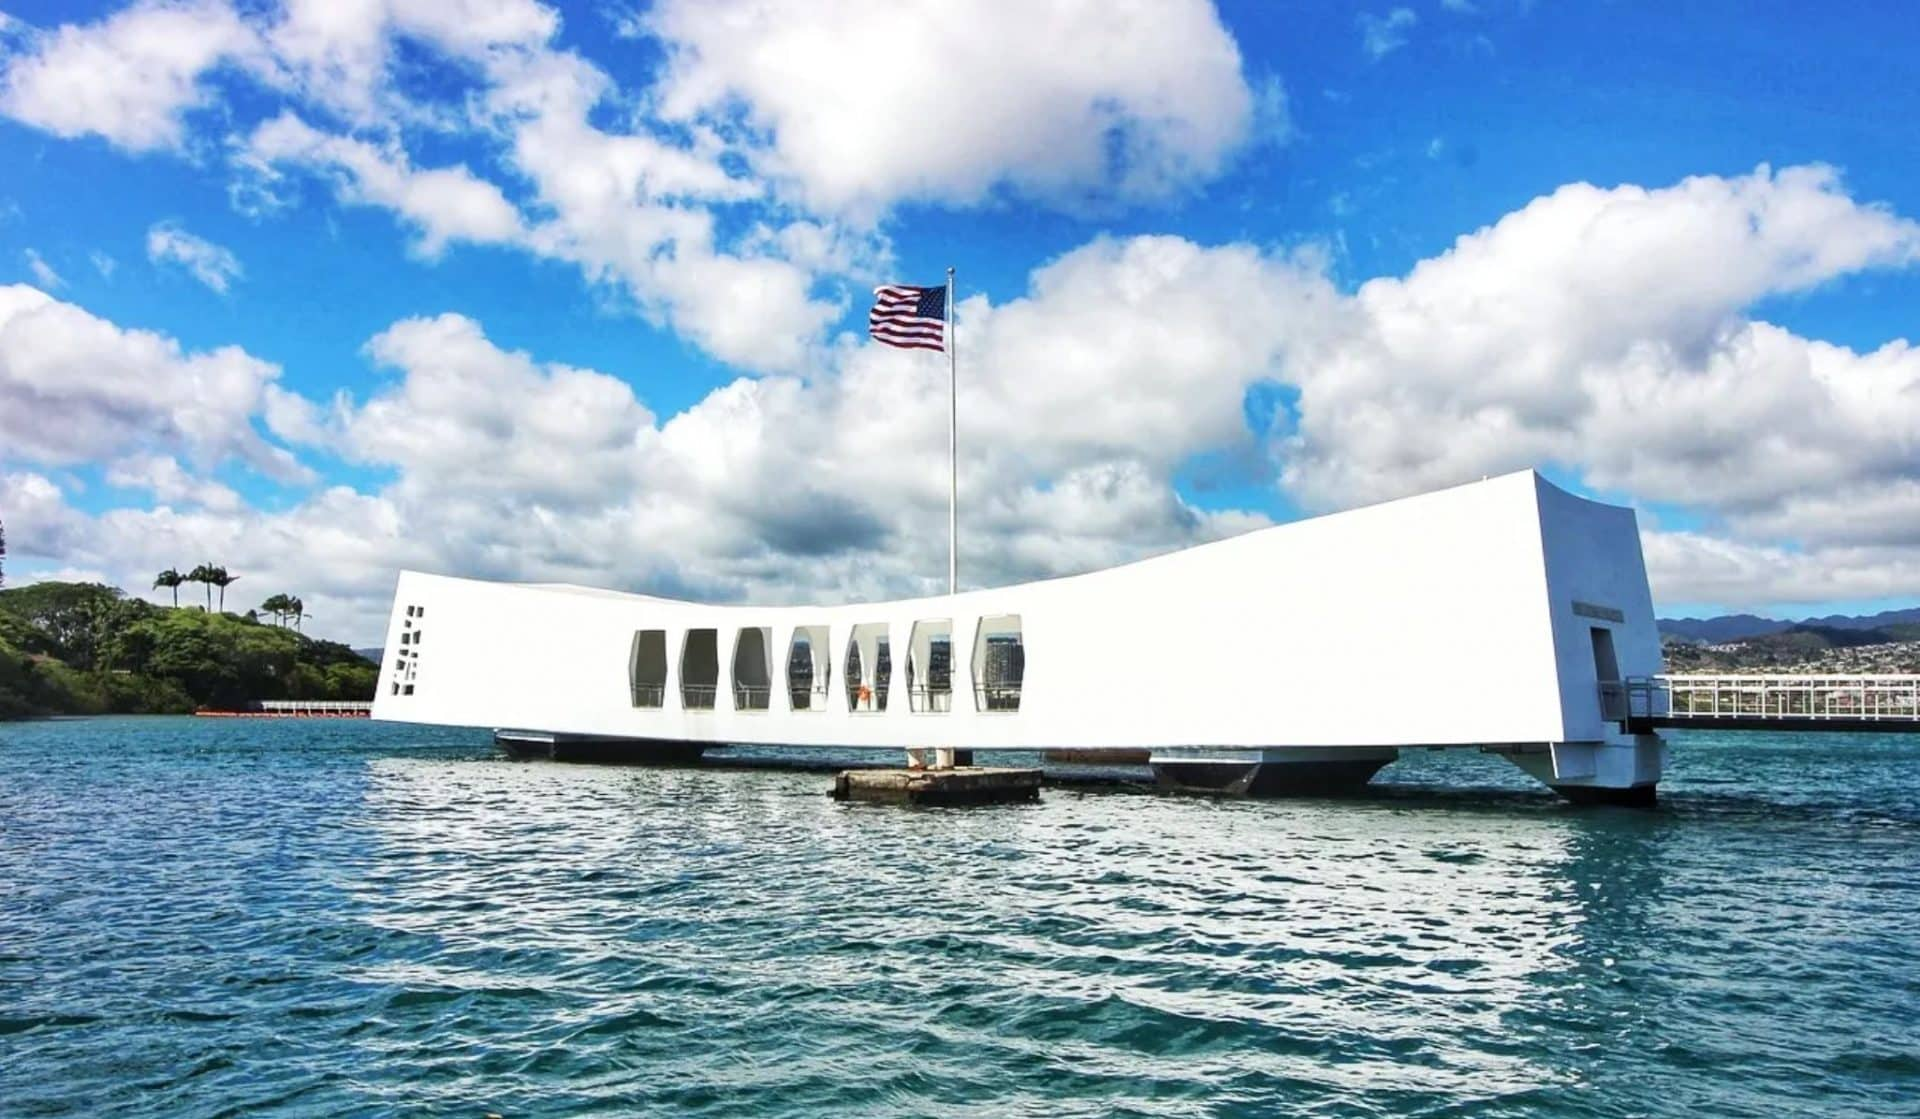 USS Arizona Memorial Park